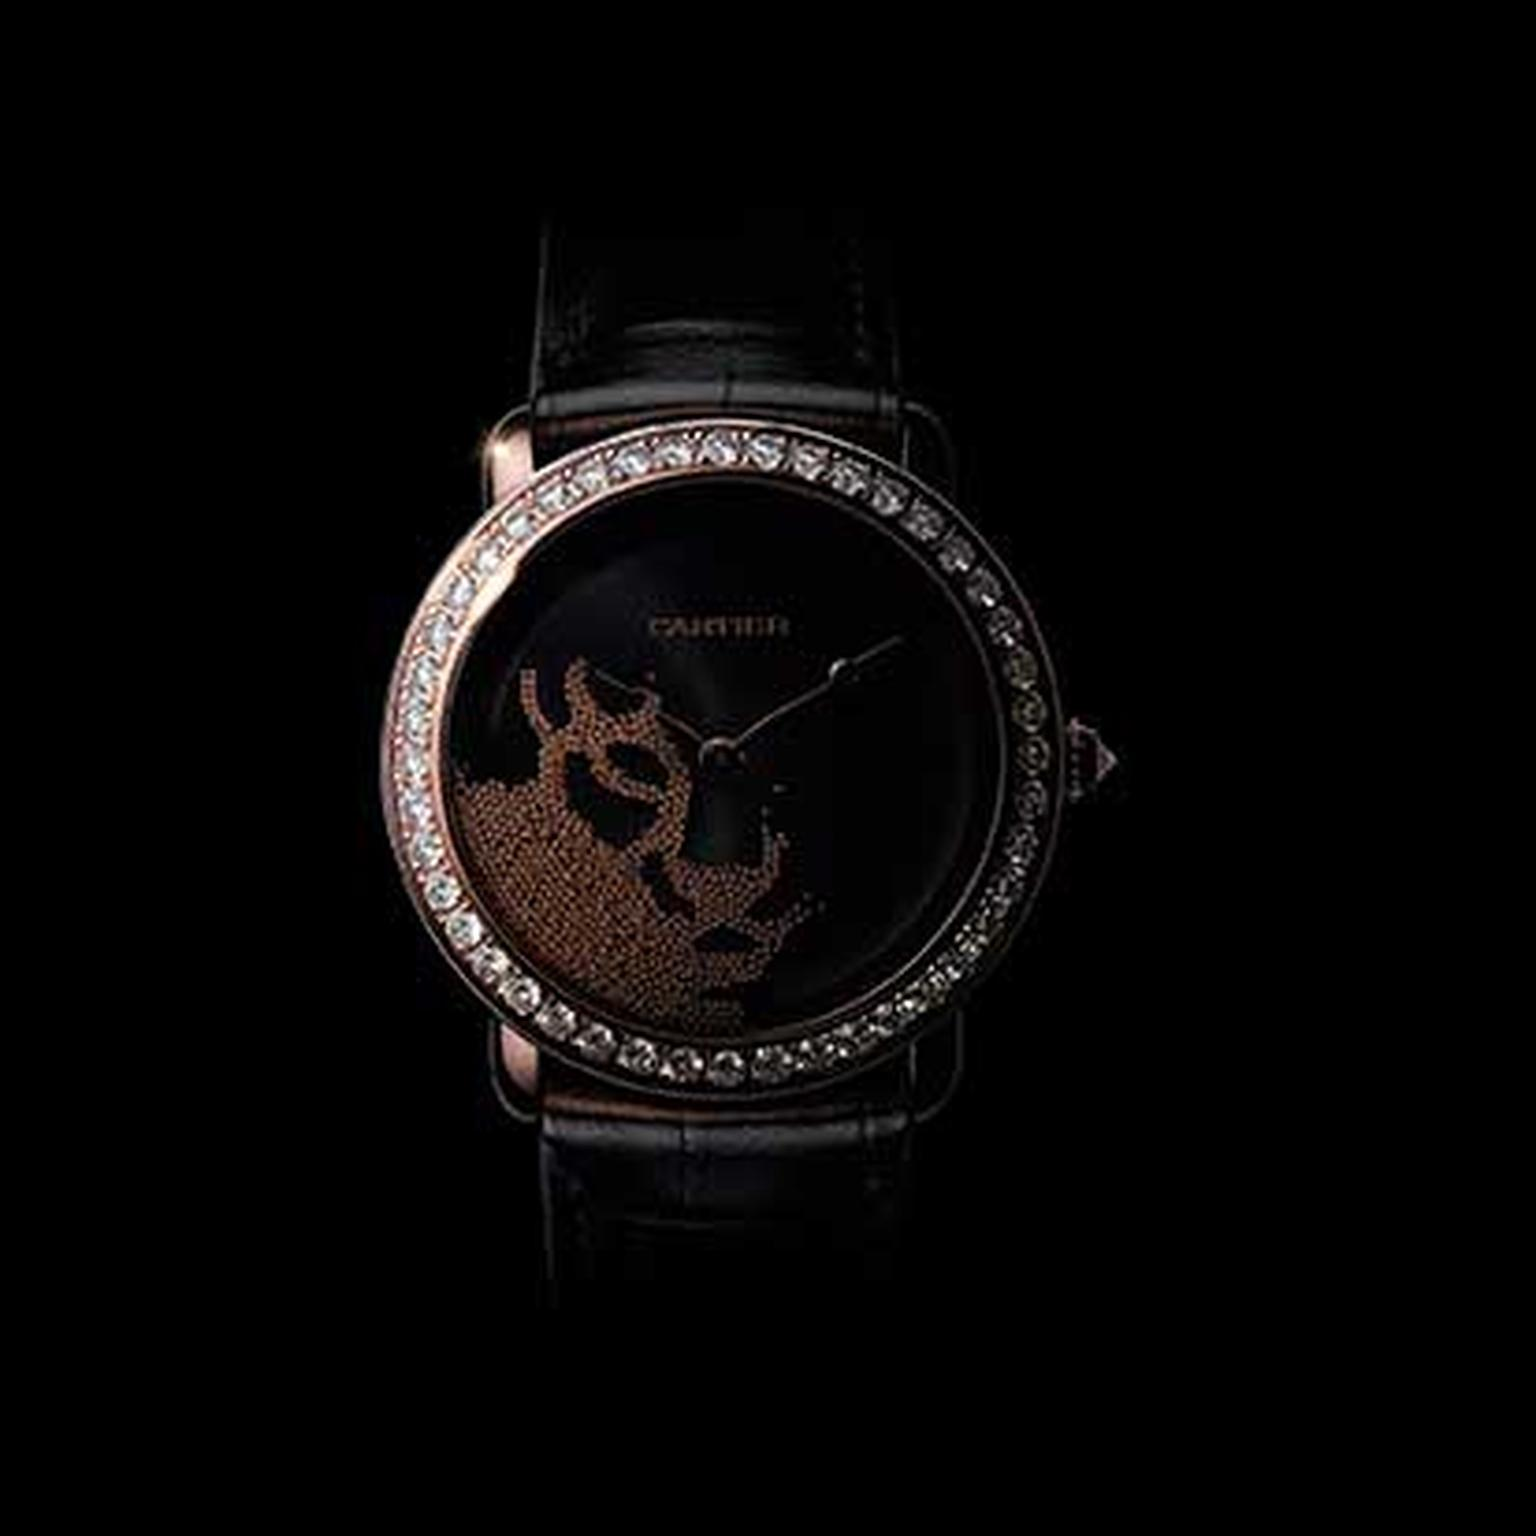 SIHH-2018-releases-Revelation-Cartier-womens-watch